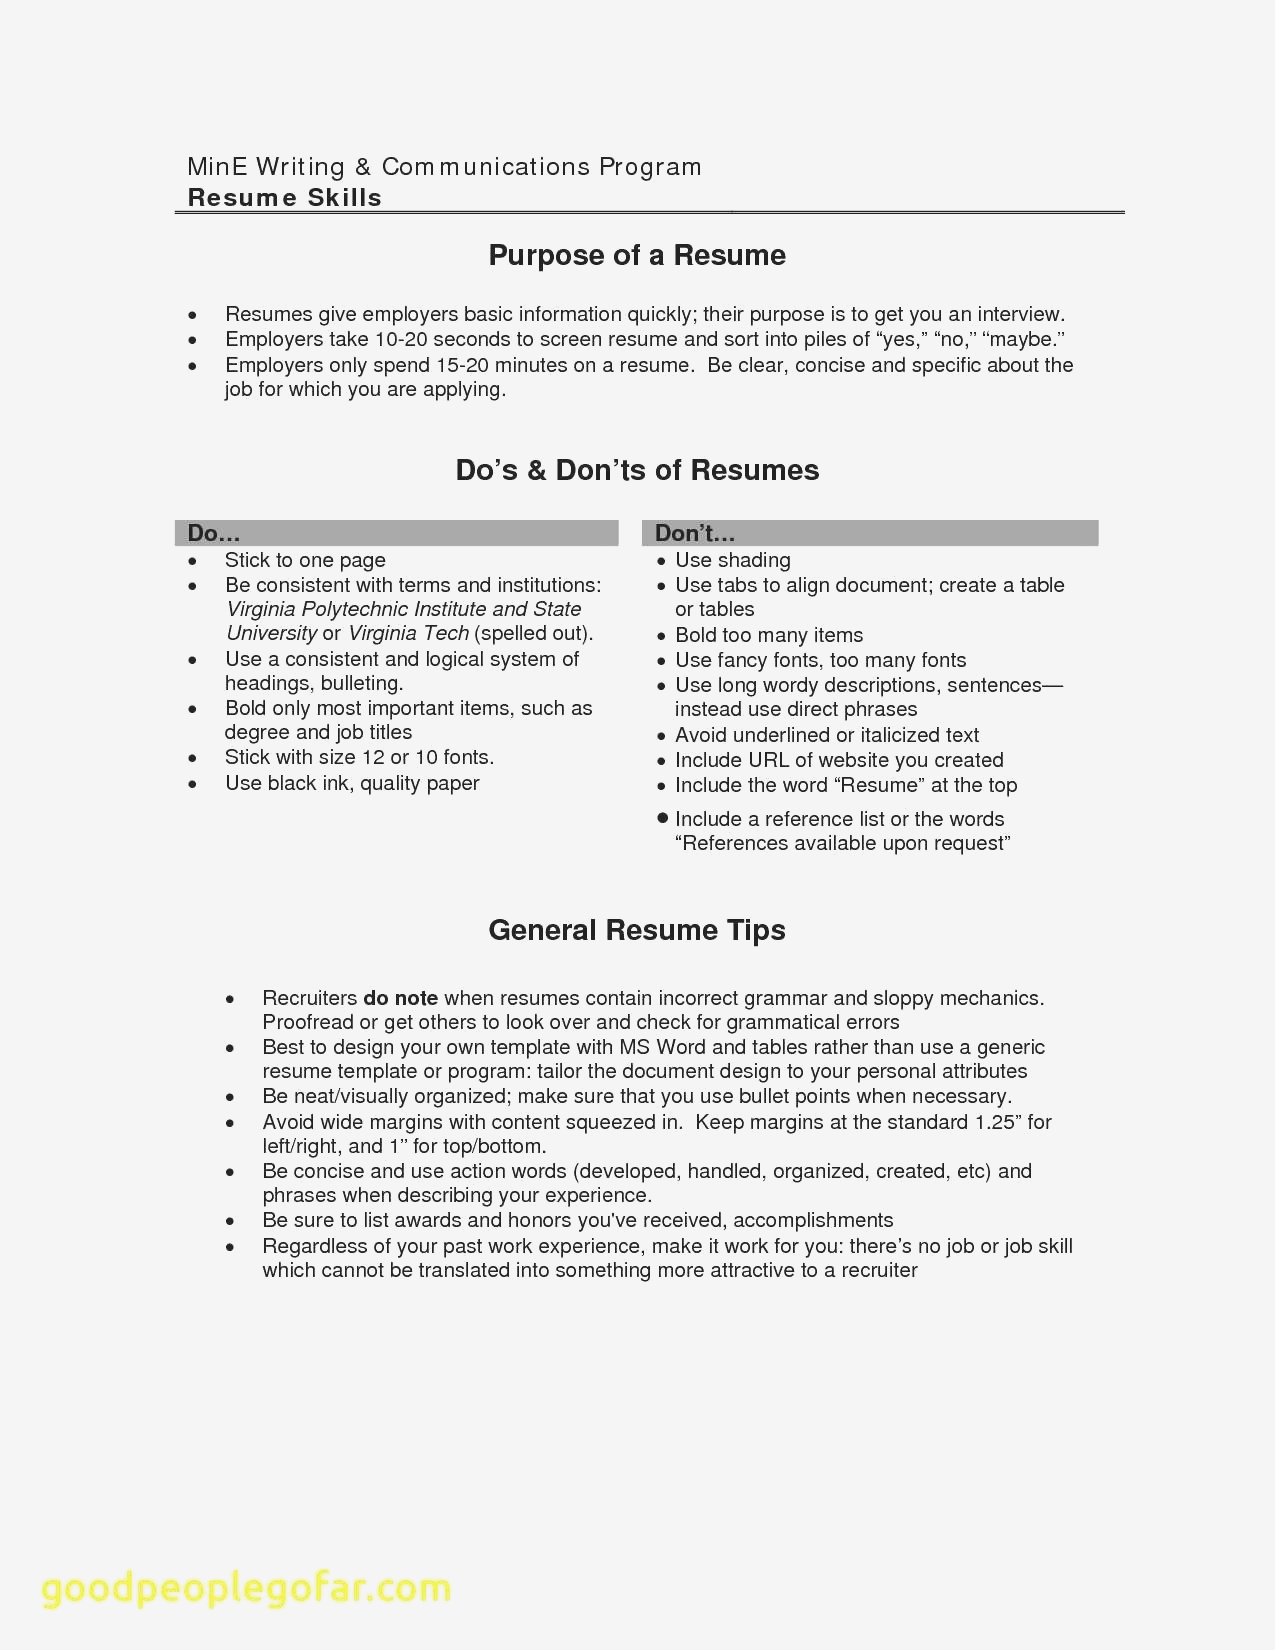 Resume Reference Page Template - Resume Reference List Template